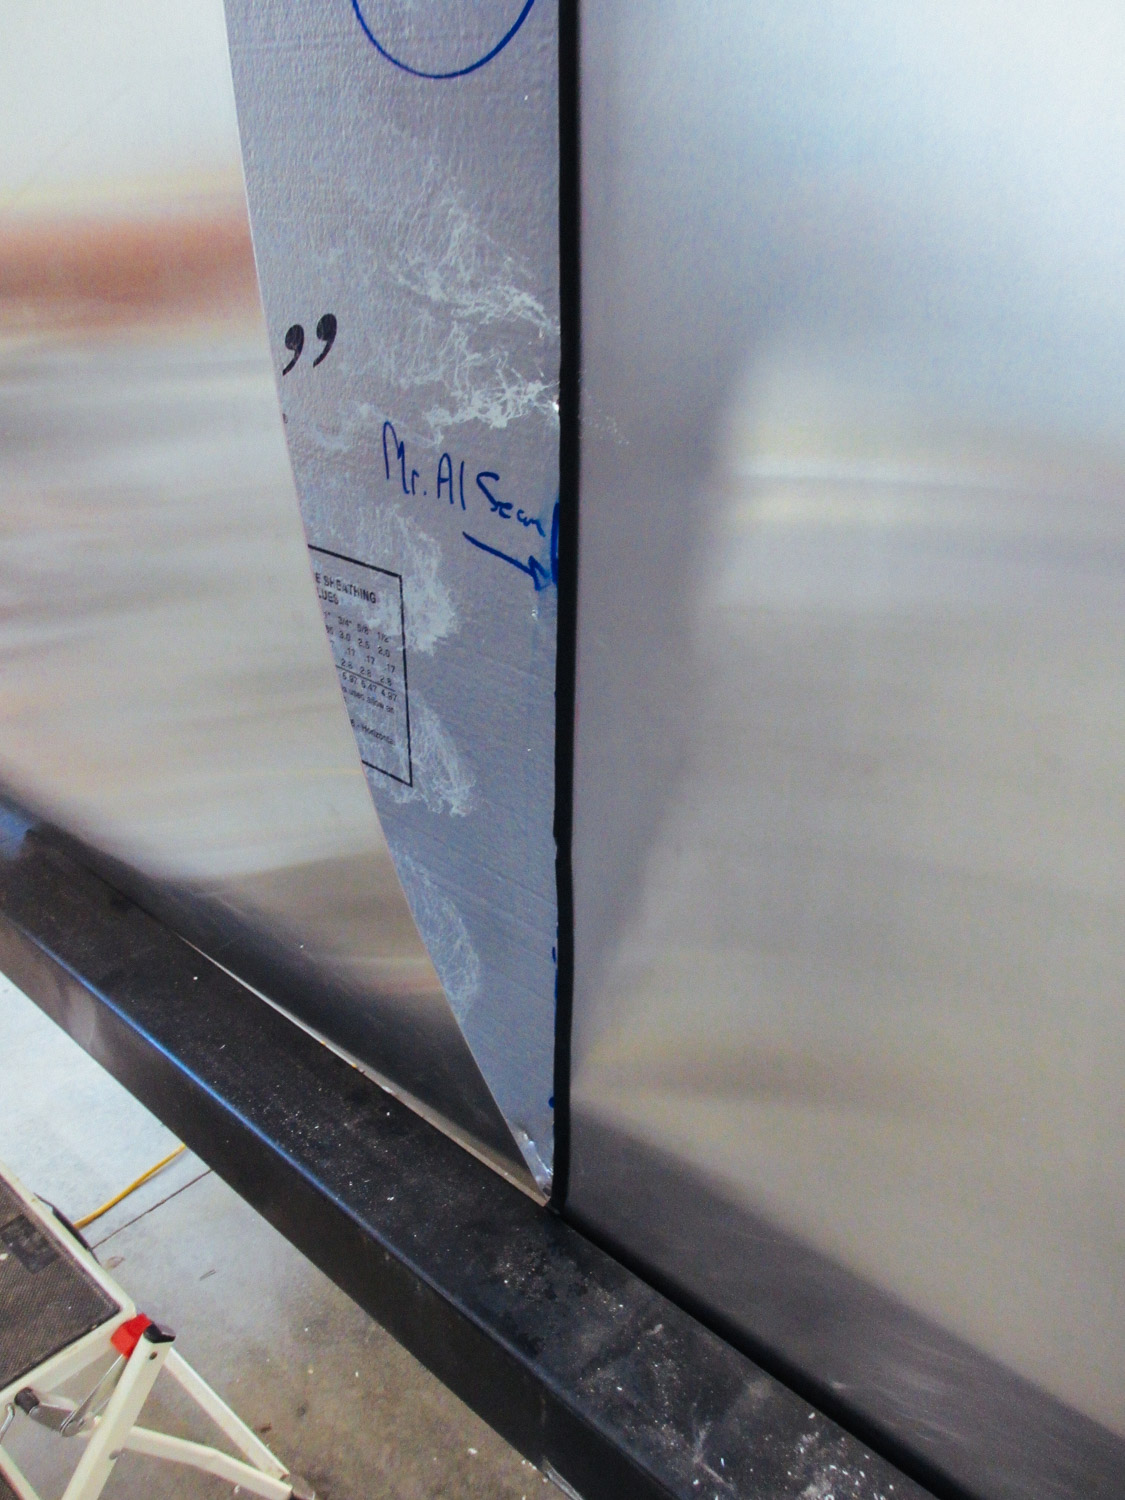 Butyl tape (the black stripe) was placed where the aluminum sheets overlapped each other. This not only kept the sheets stuck to one another, but more important, the butyl tape ensured the screw holes in the siding would be waterproof.